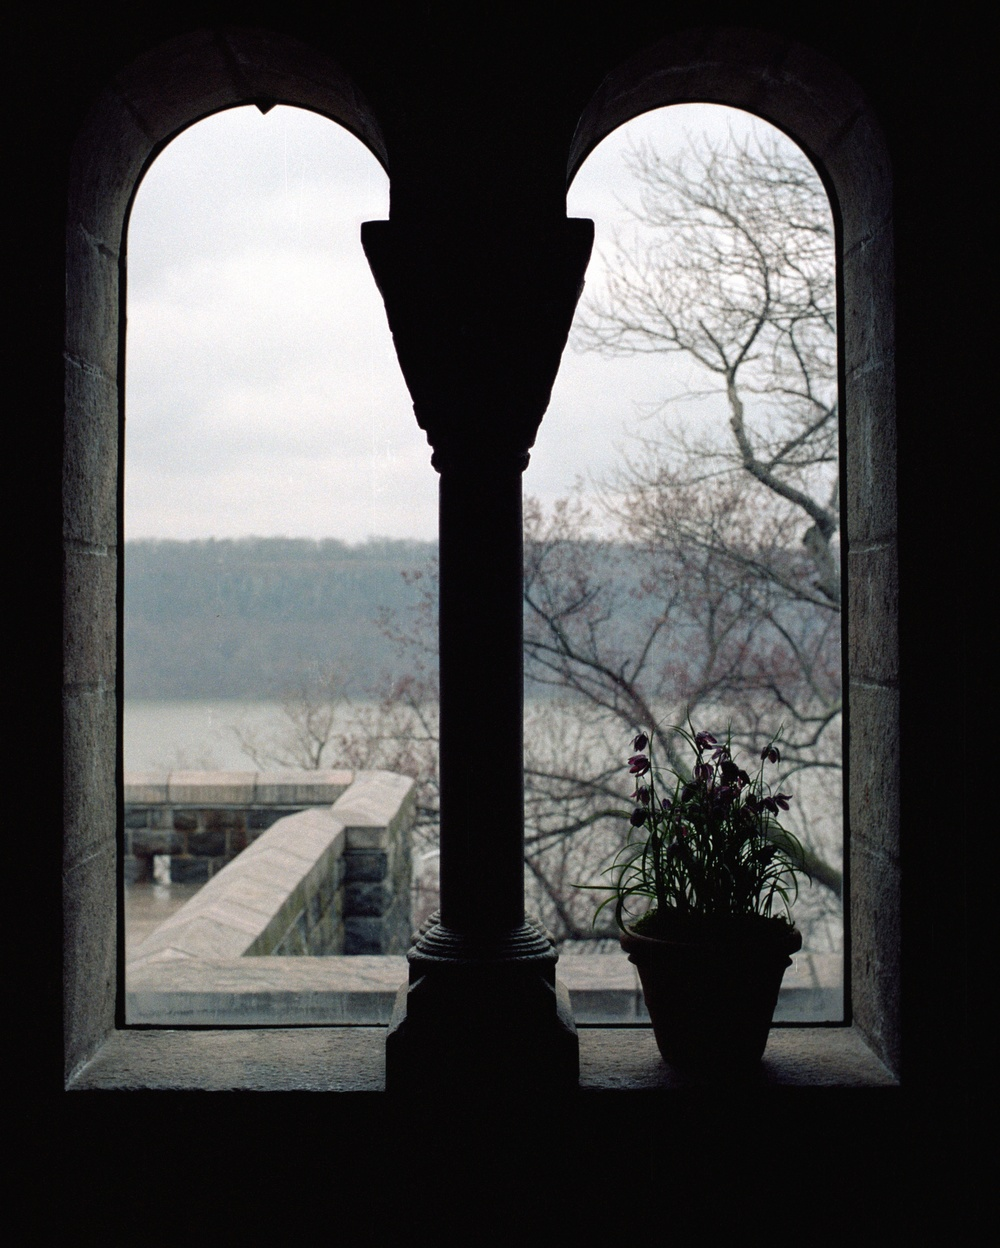 The Cloisters, New York City, NY. 2014. C-Print.